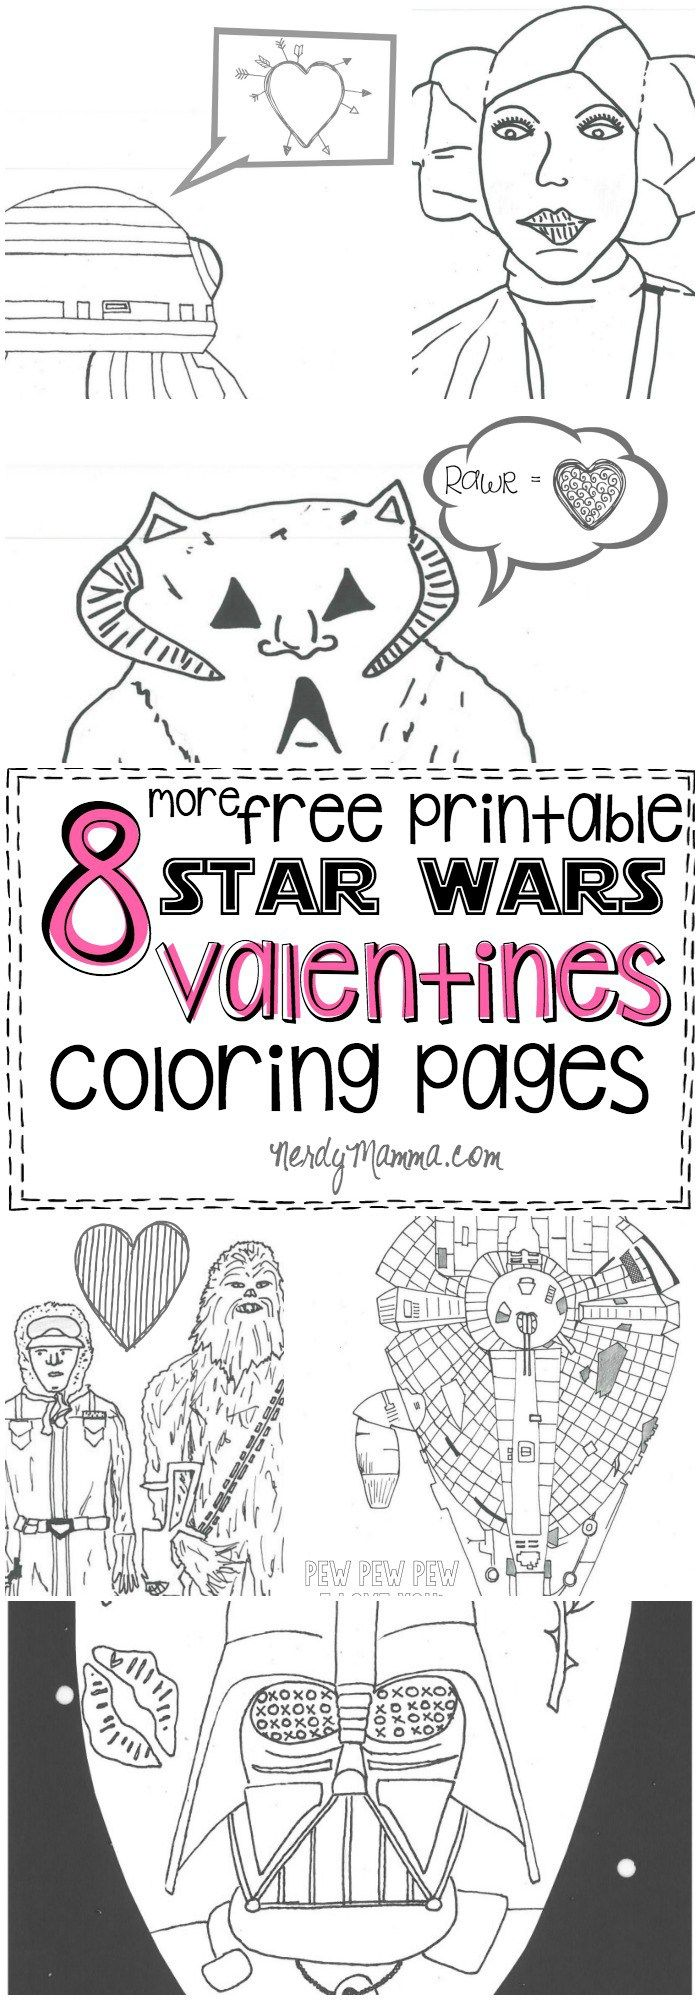 These free printable Star Wars